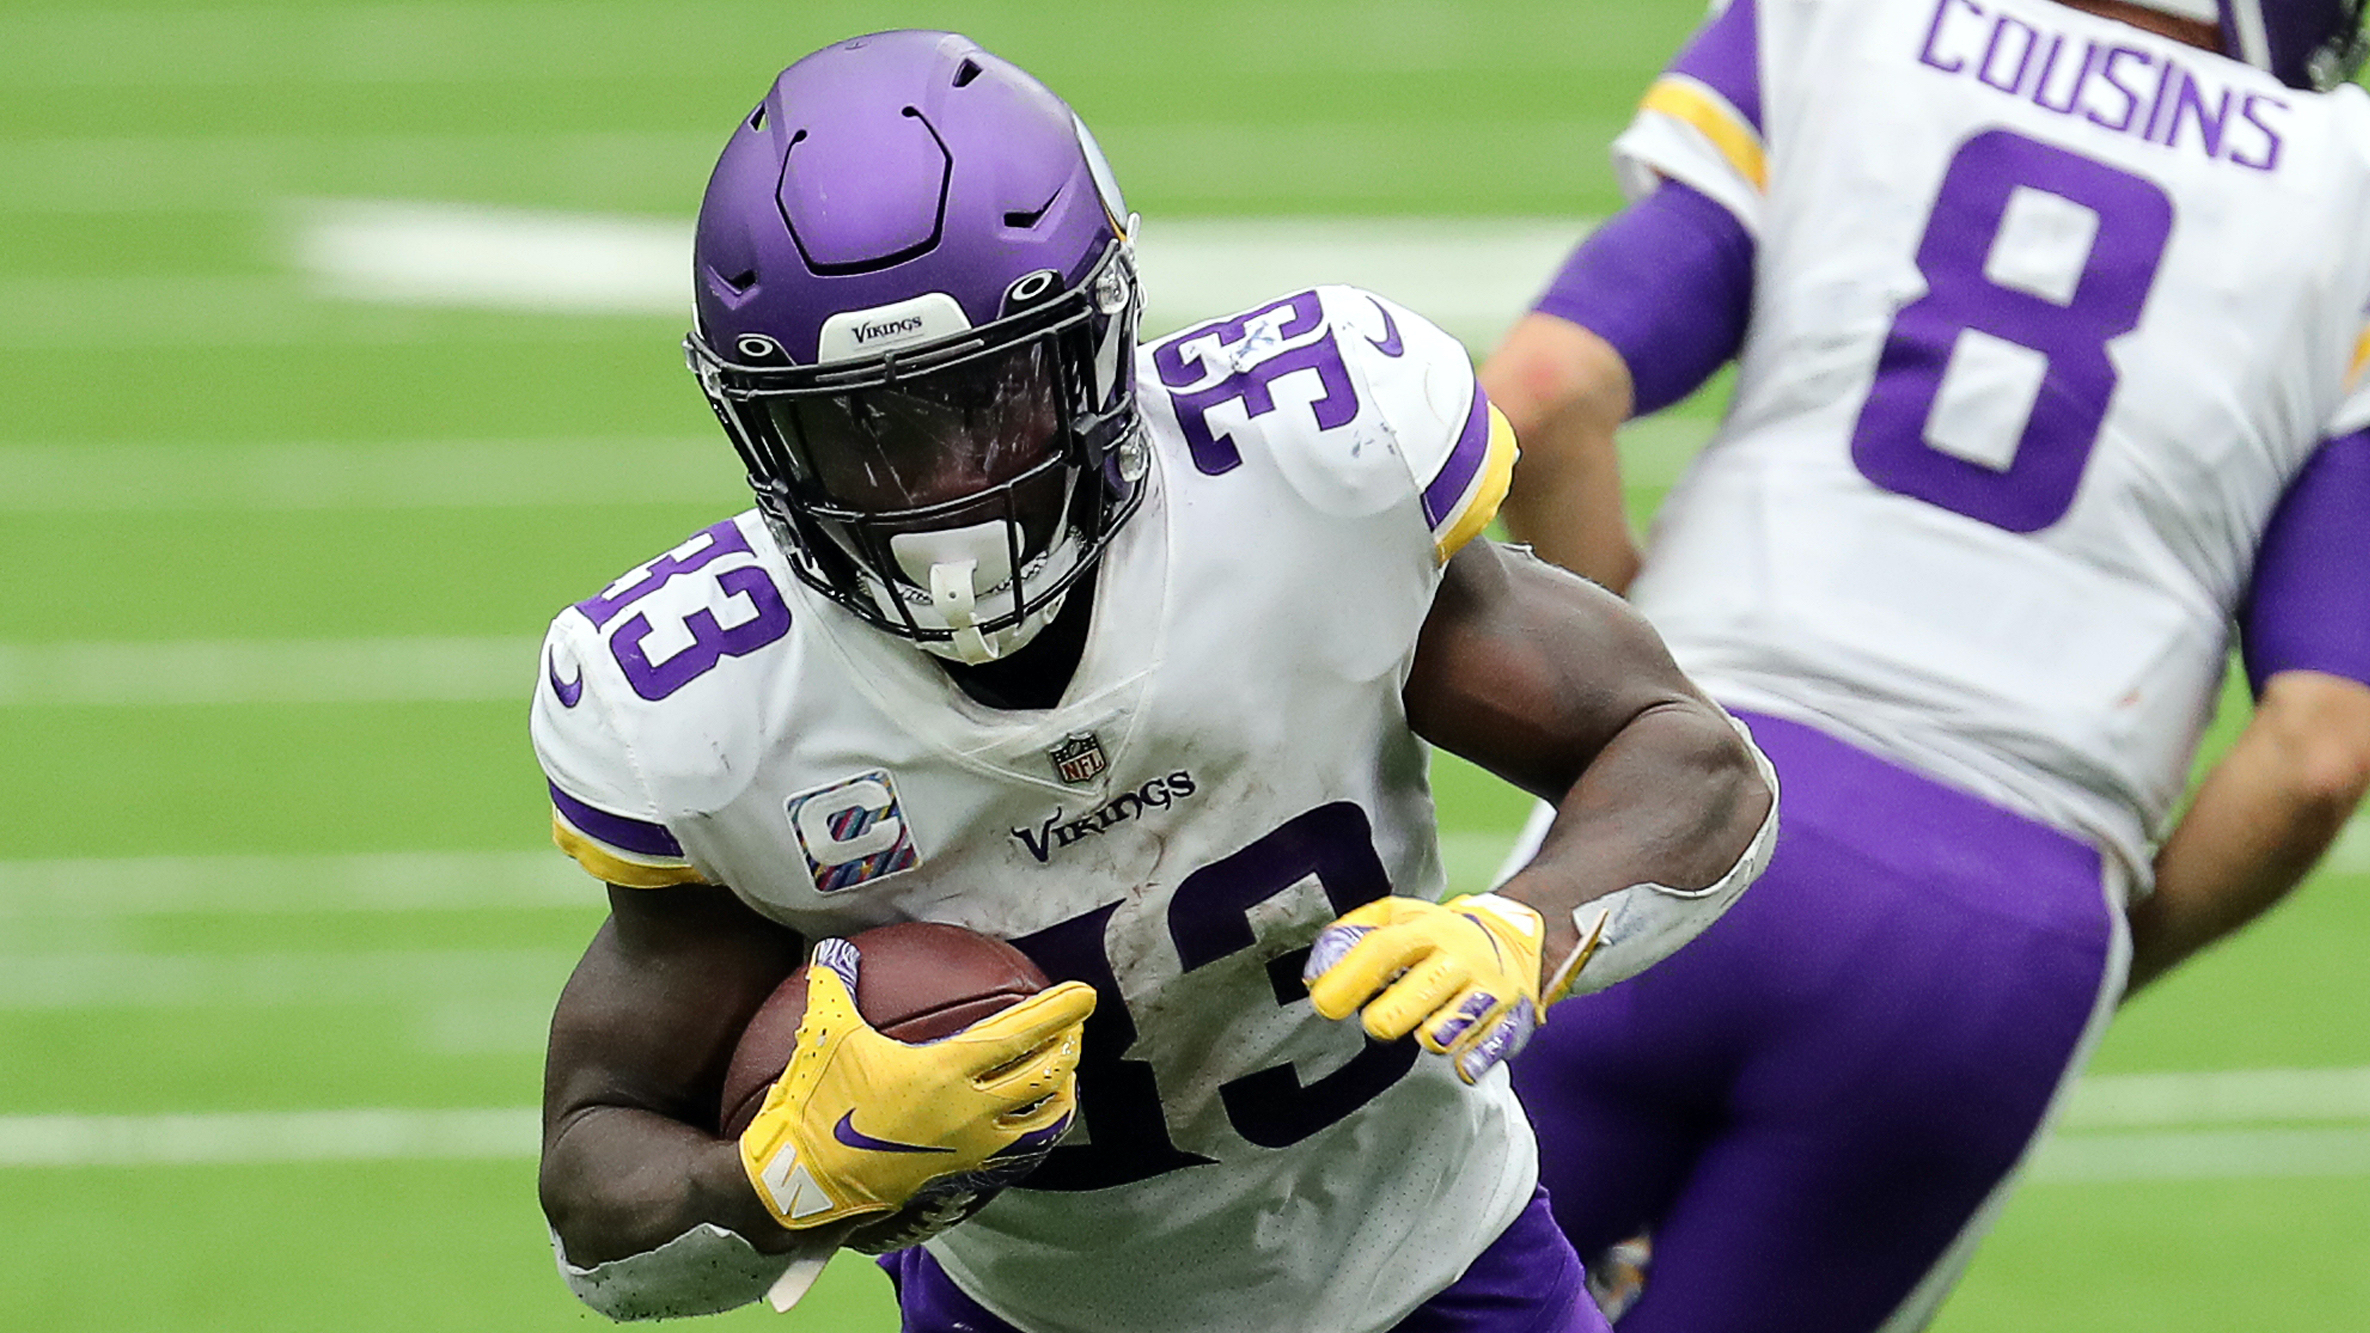 Bears vs. Vikings Promo: Bet $1, Win $100 if There's at Least 1 TD! article feature image